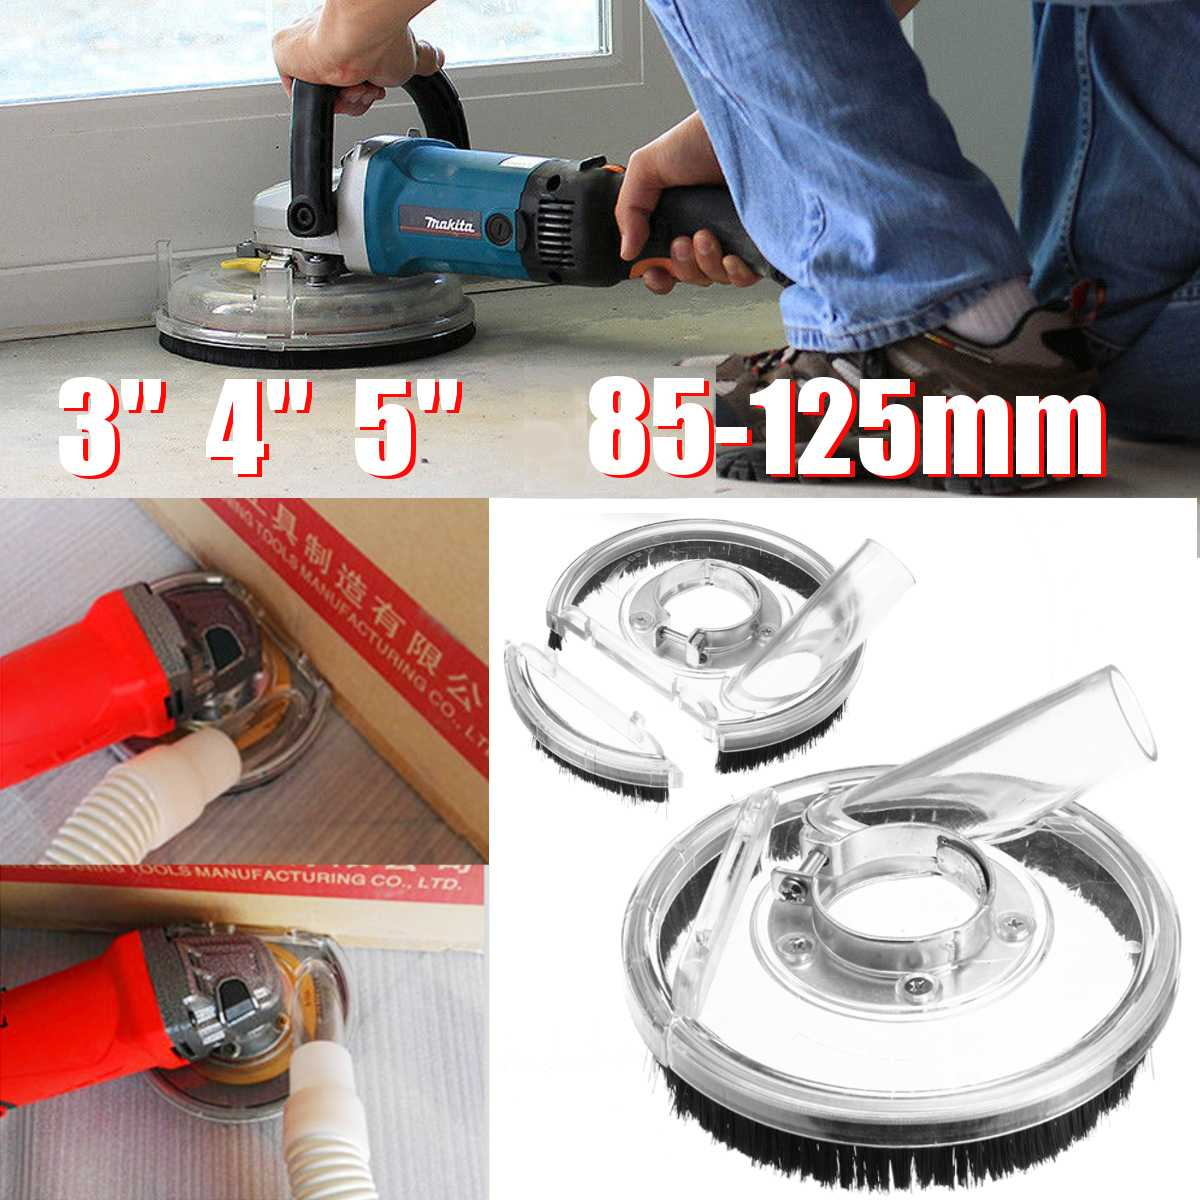 Dust Shroud Kit Dry Grinding Dust Cover For Angle Grinder 80-125mm Hand Grinder Power Tool Accessories Clear Vacuum Dust Cover